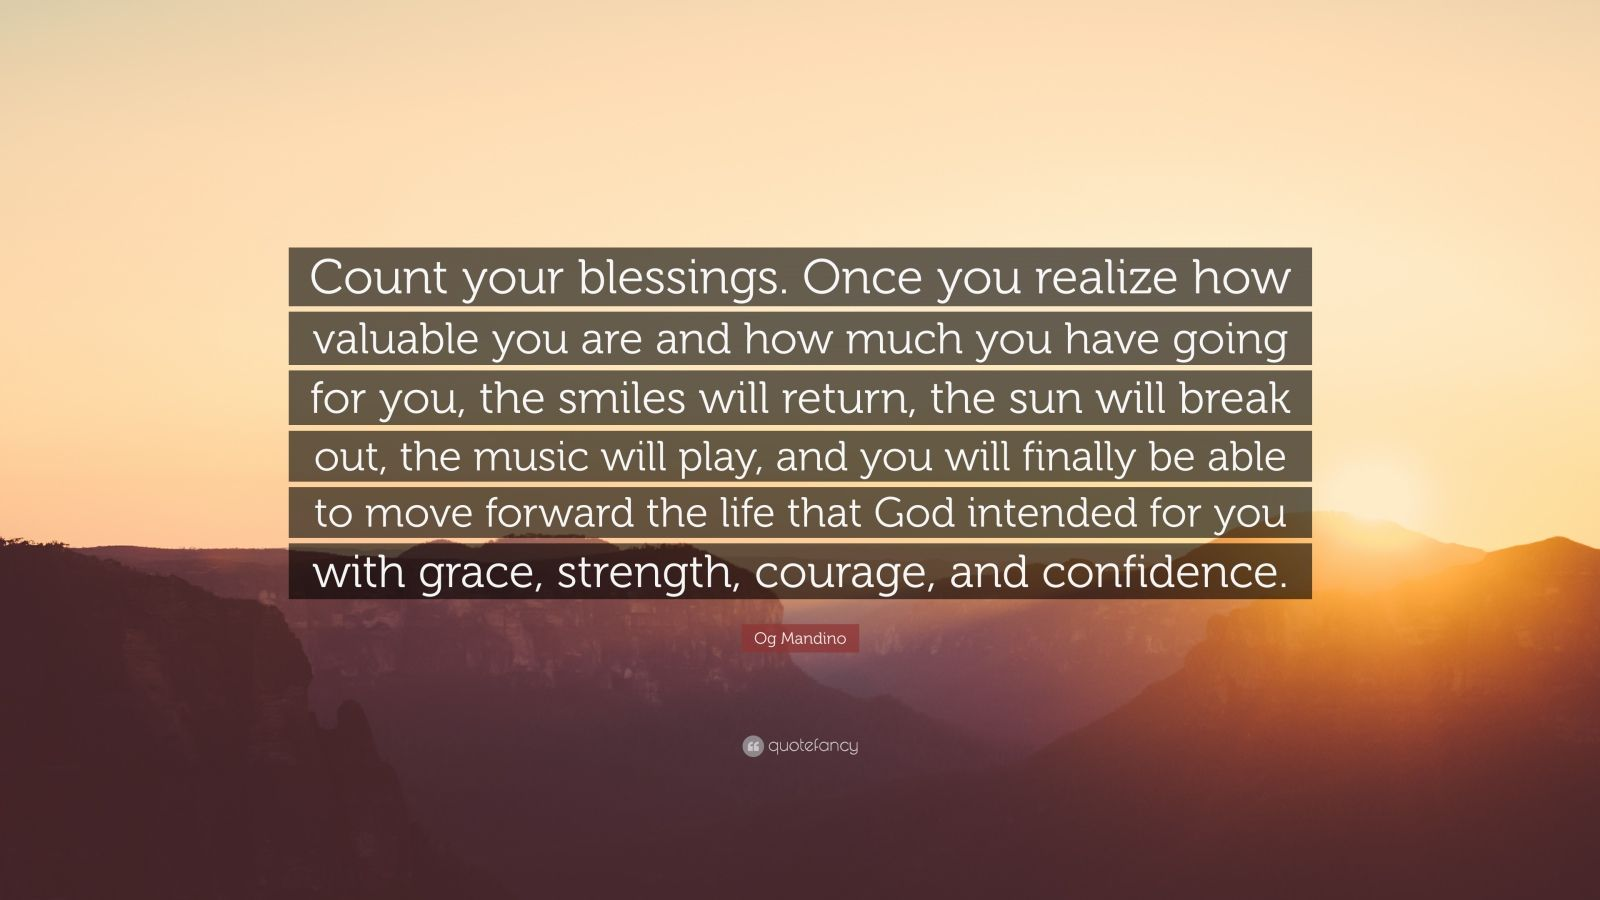 "Og Mandino Quote: ""Count your blessings. Once you realize how valuable you are and how much you have going for you, the smiles will return, the sun will break out, the music will play, and you will finally be able to move forward the life that God intended for you with grace, strength, courage, and confidence."""